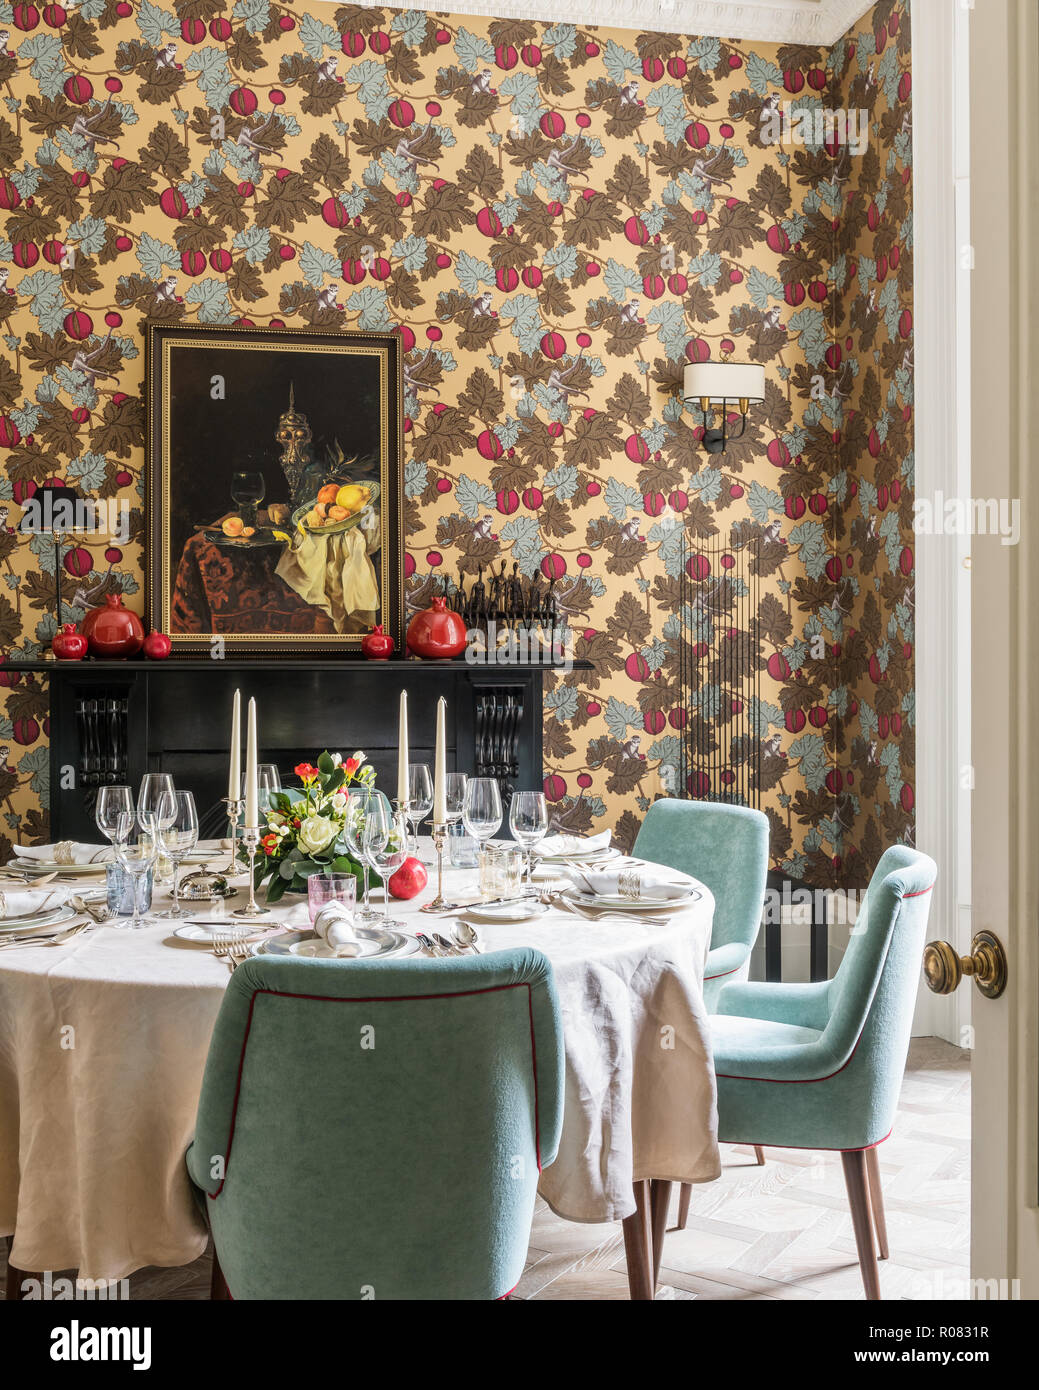 Set Table In Eclectic Dining Room Stock Photo Alamy